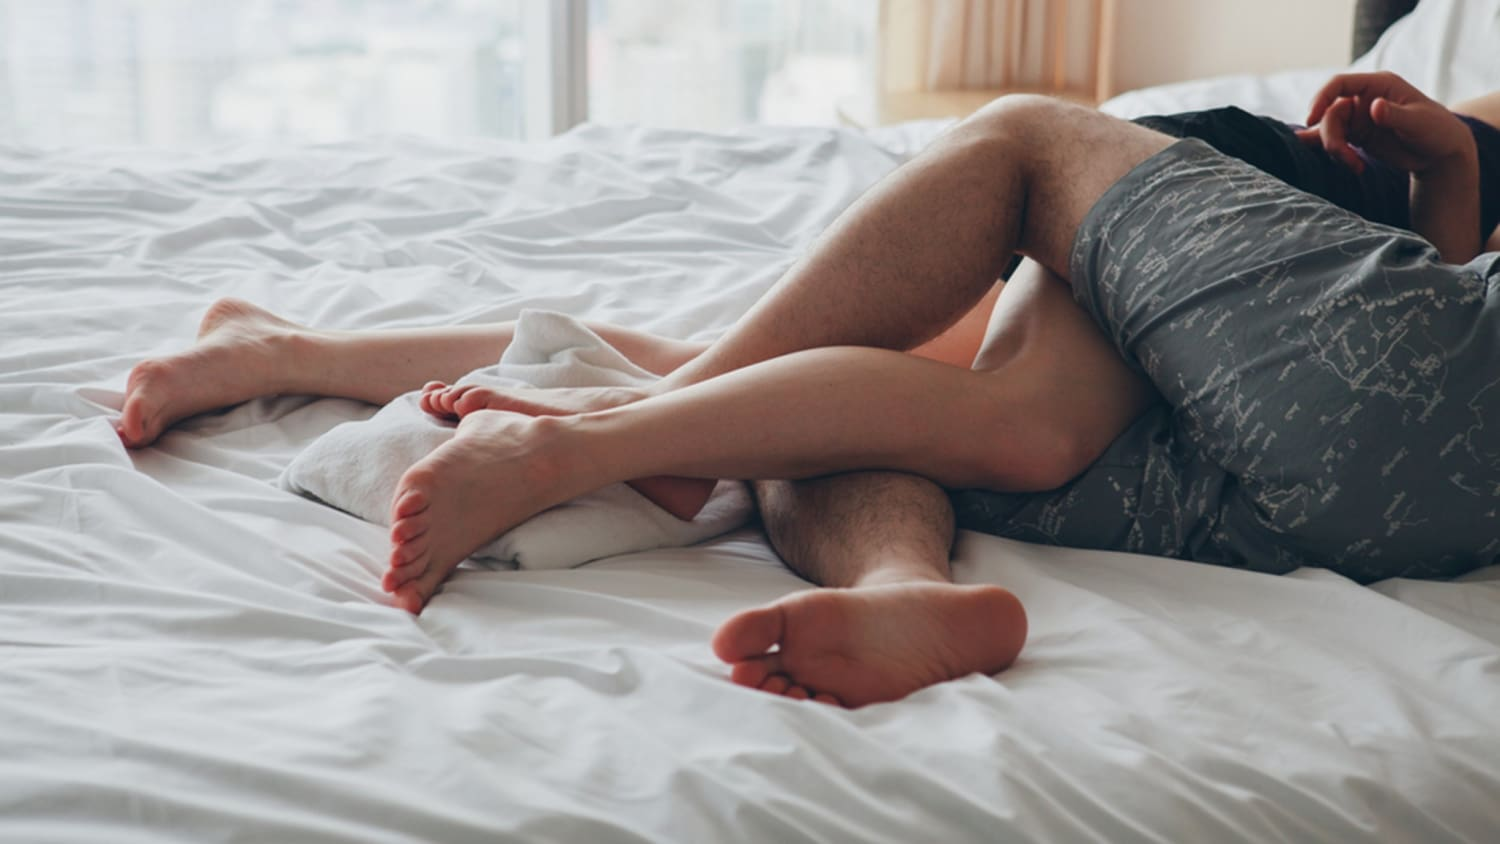 How Sex Toys Can Help You Play Nice With a Partner